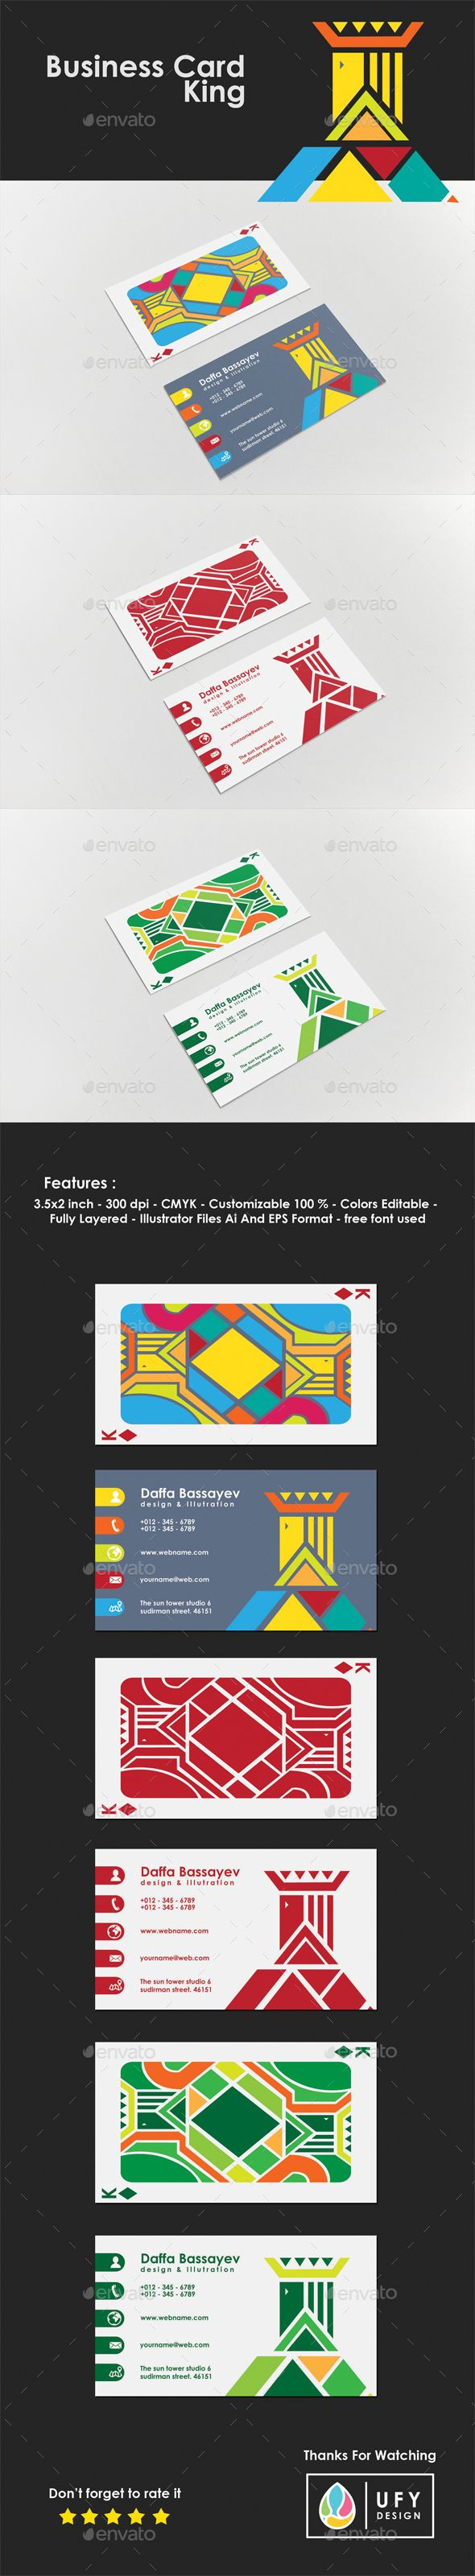 Business card king business cards print templates and card printing business card king reheart Images